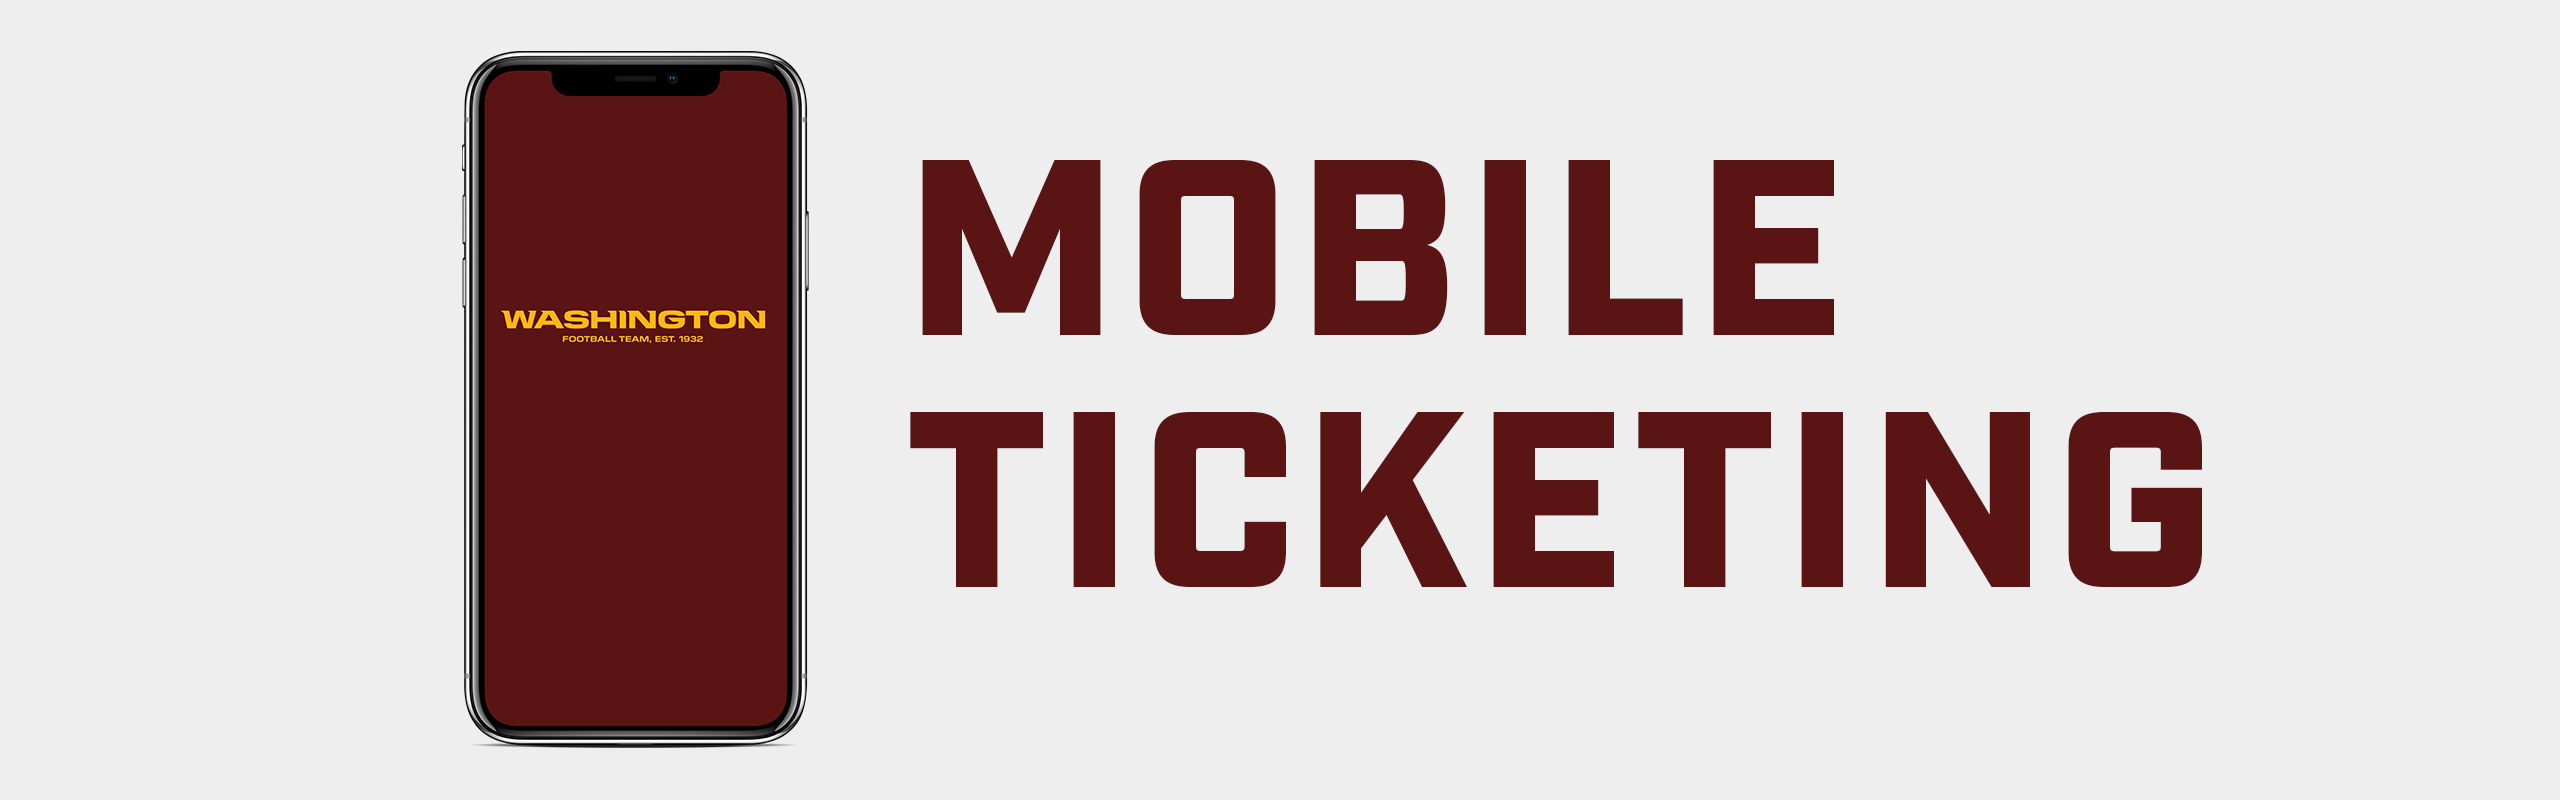 mobile-ticketing-page-large-header